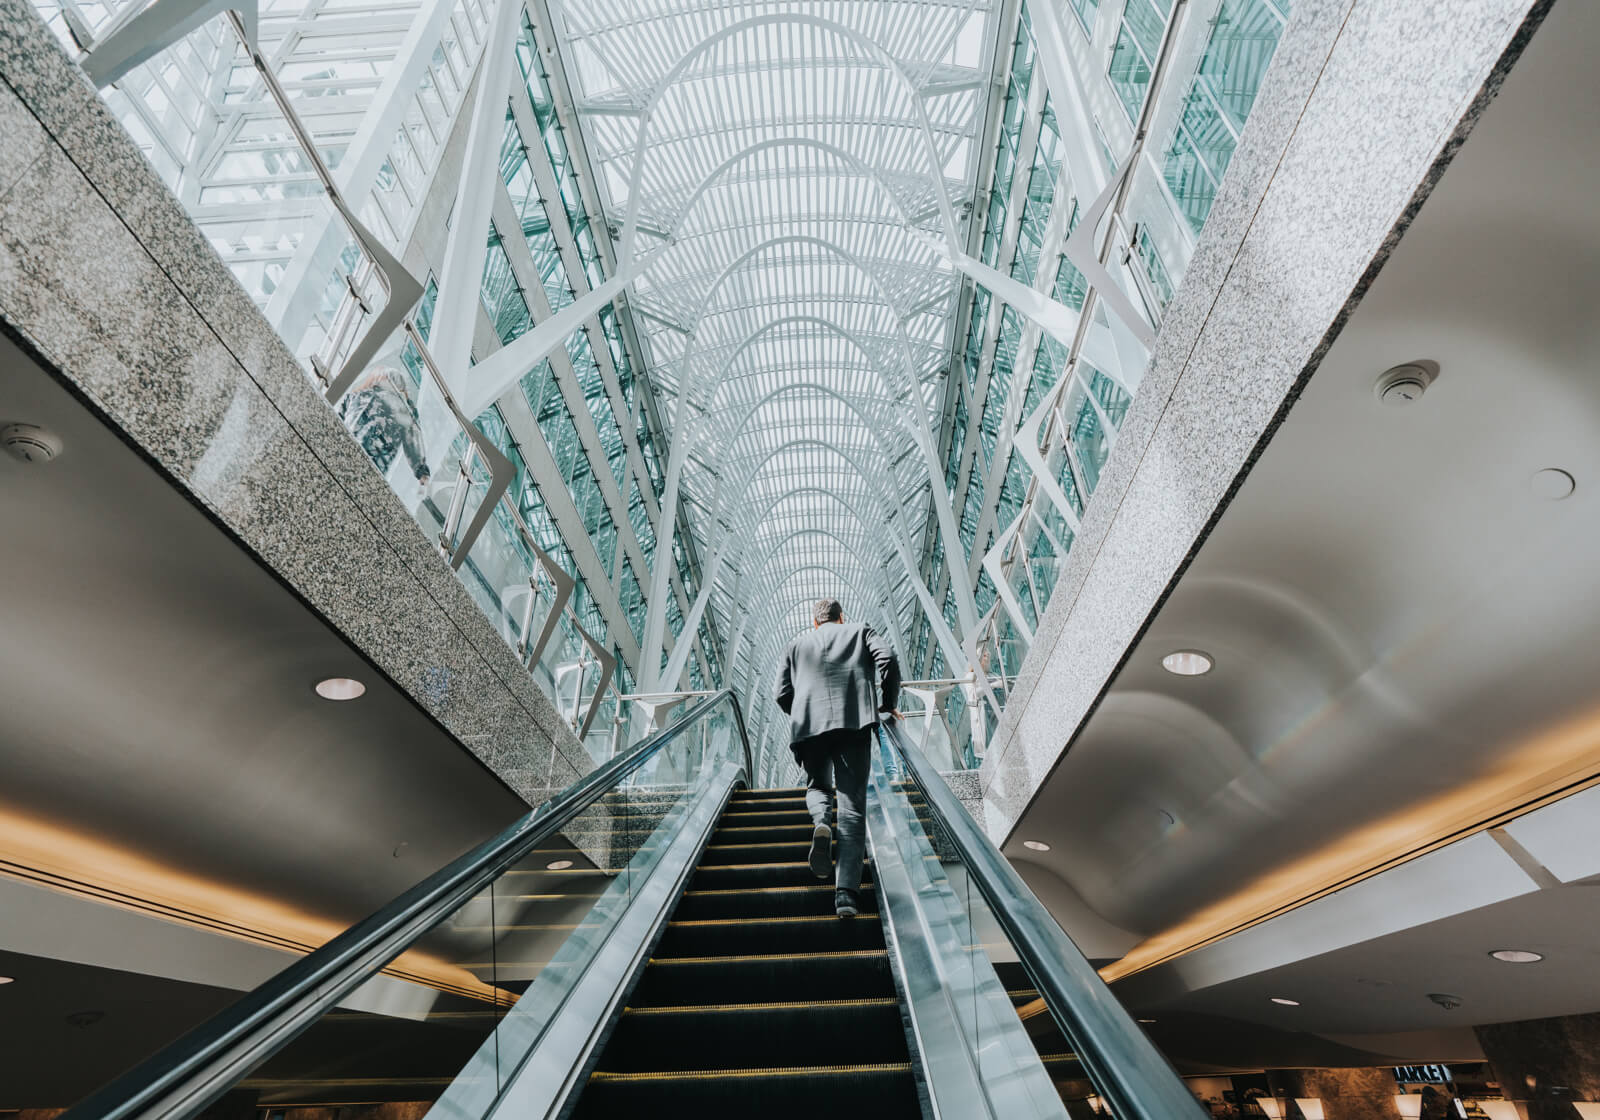 A man running up the escalator in bright office building